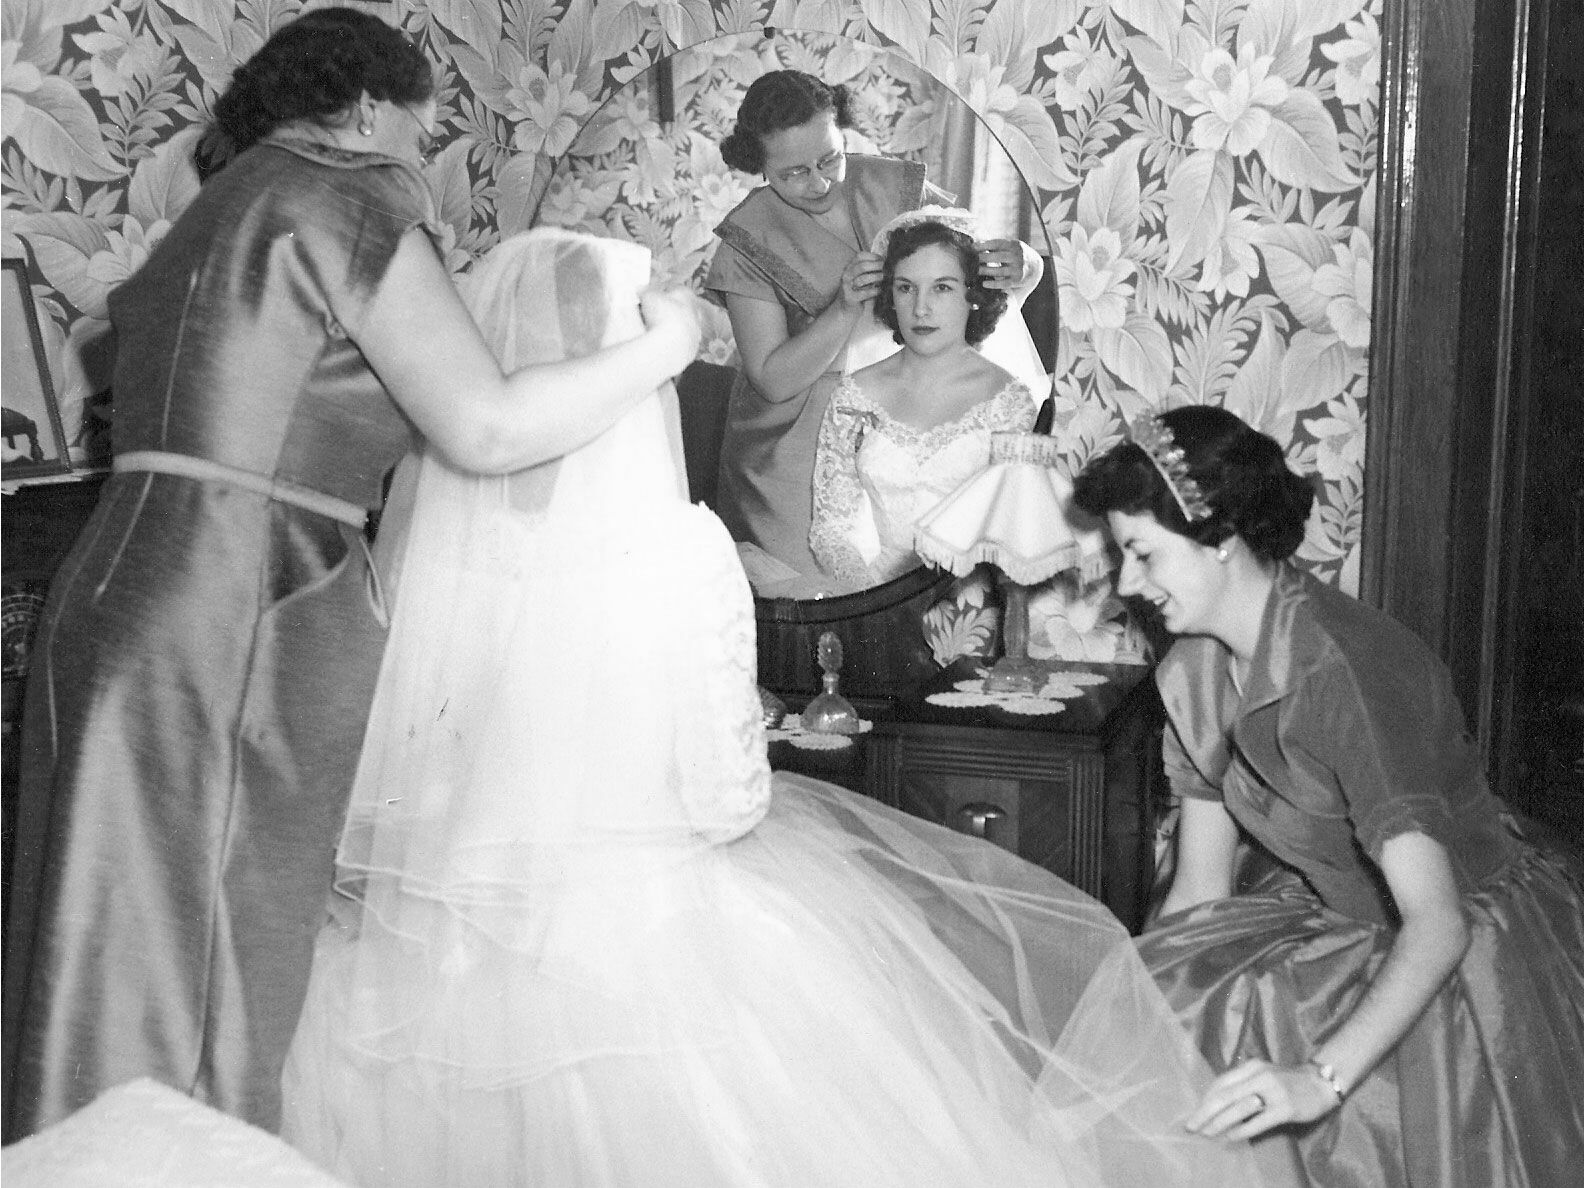 The Knot Editors\' Moms on Their Wedding Days